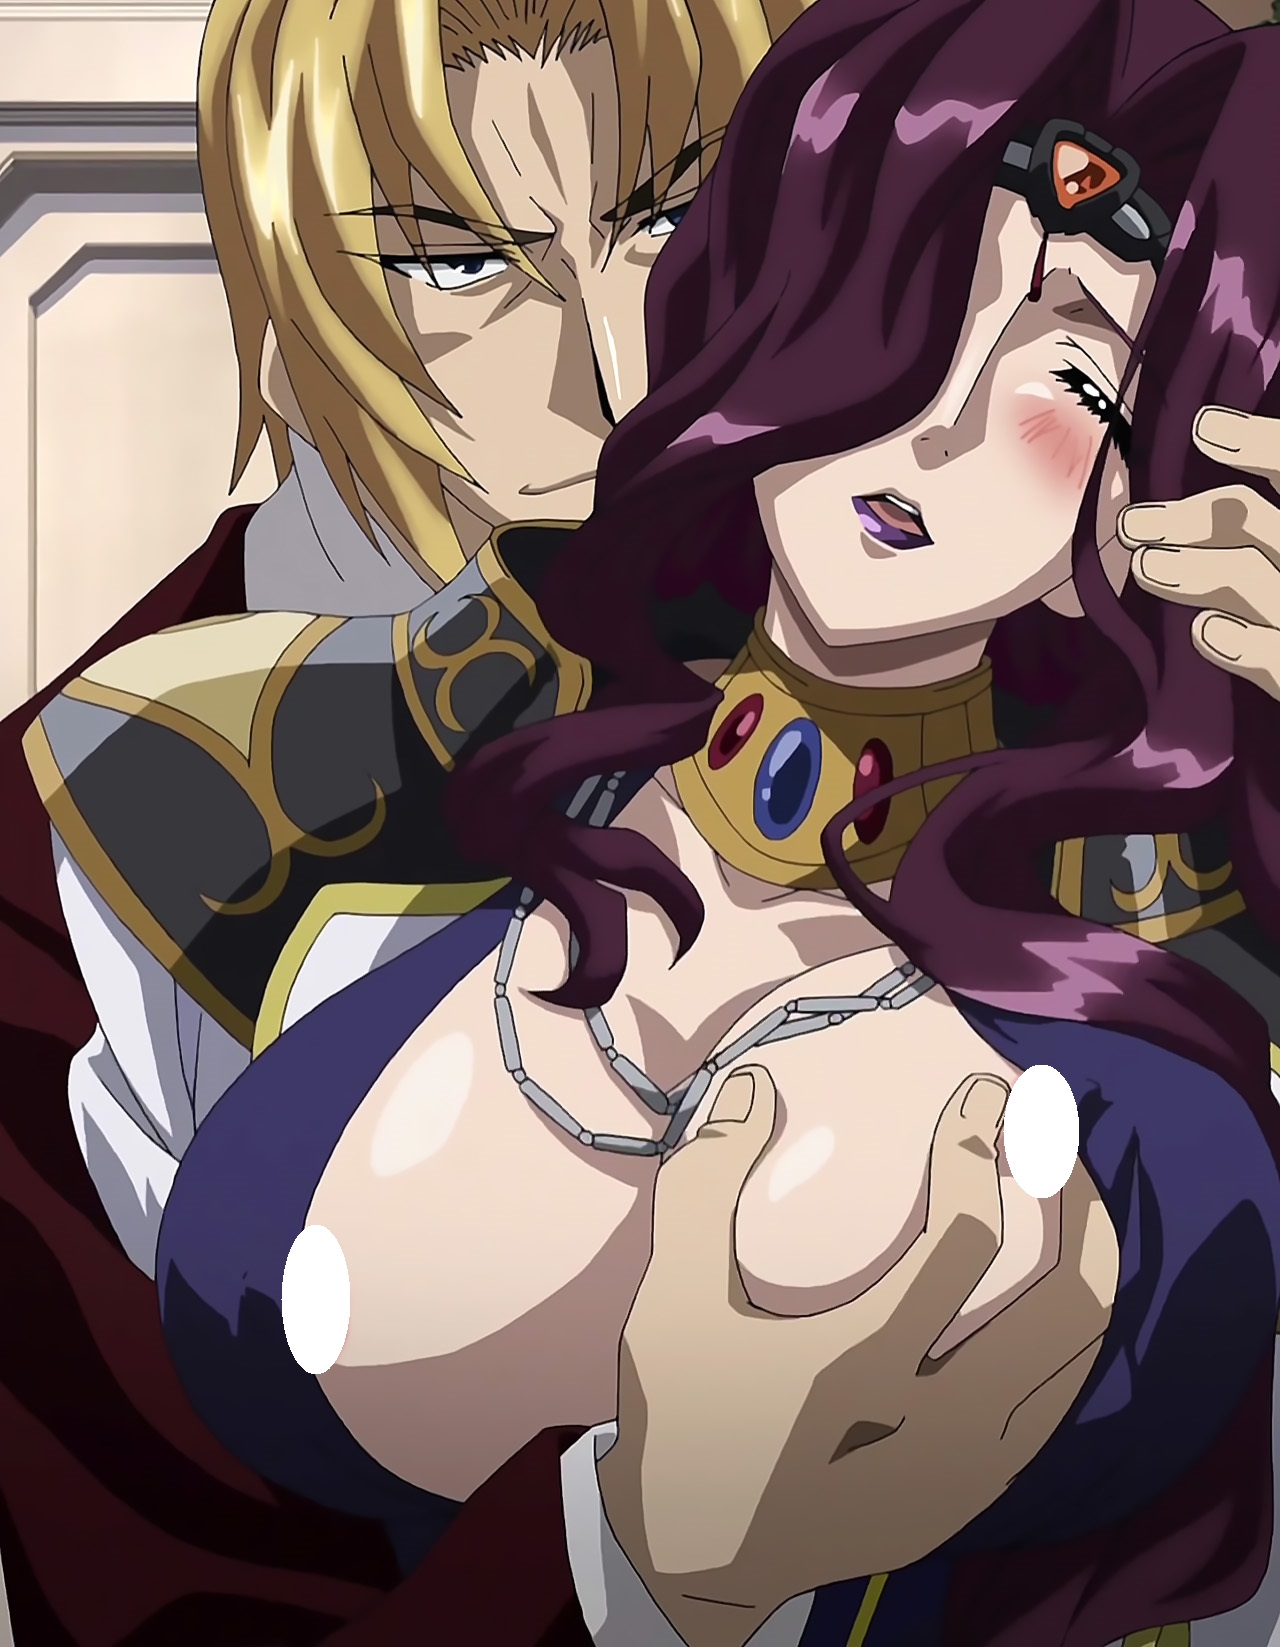 Nightelf hentai gif smut photos